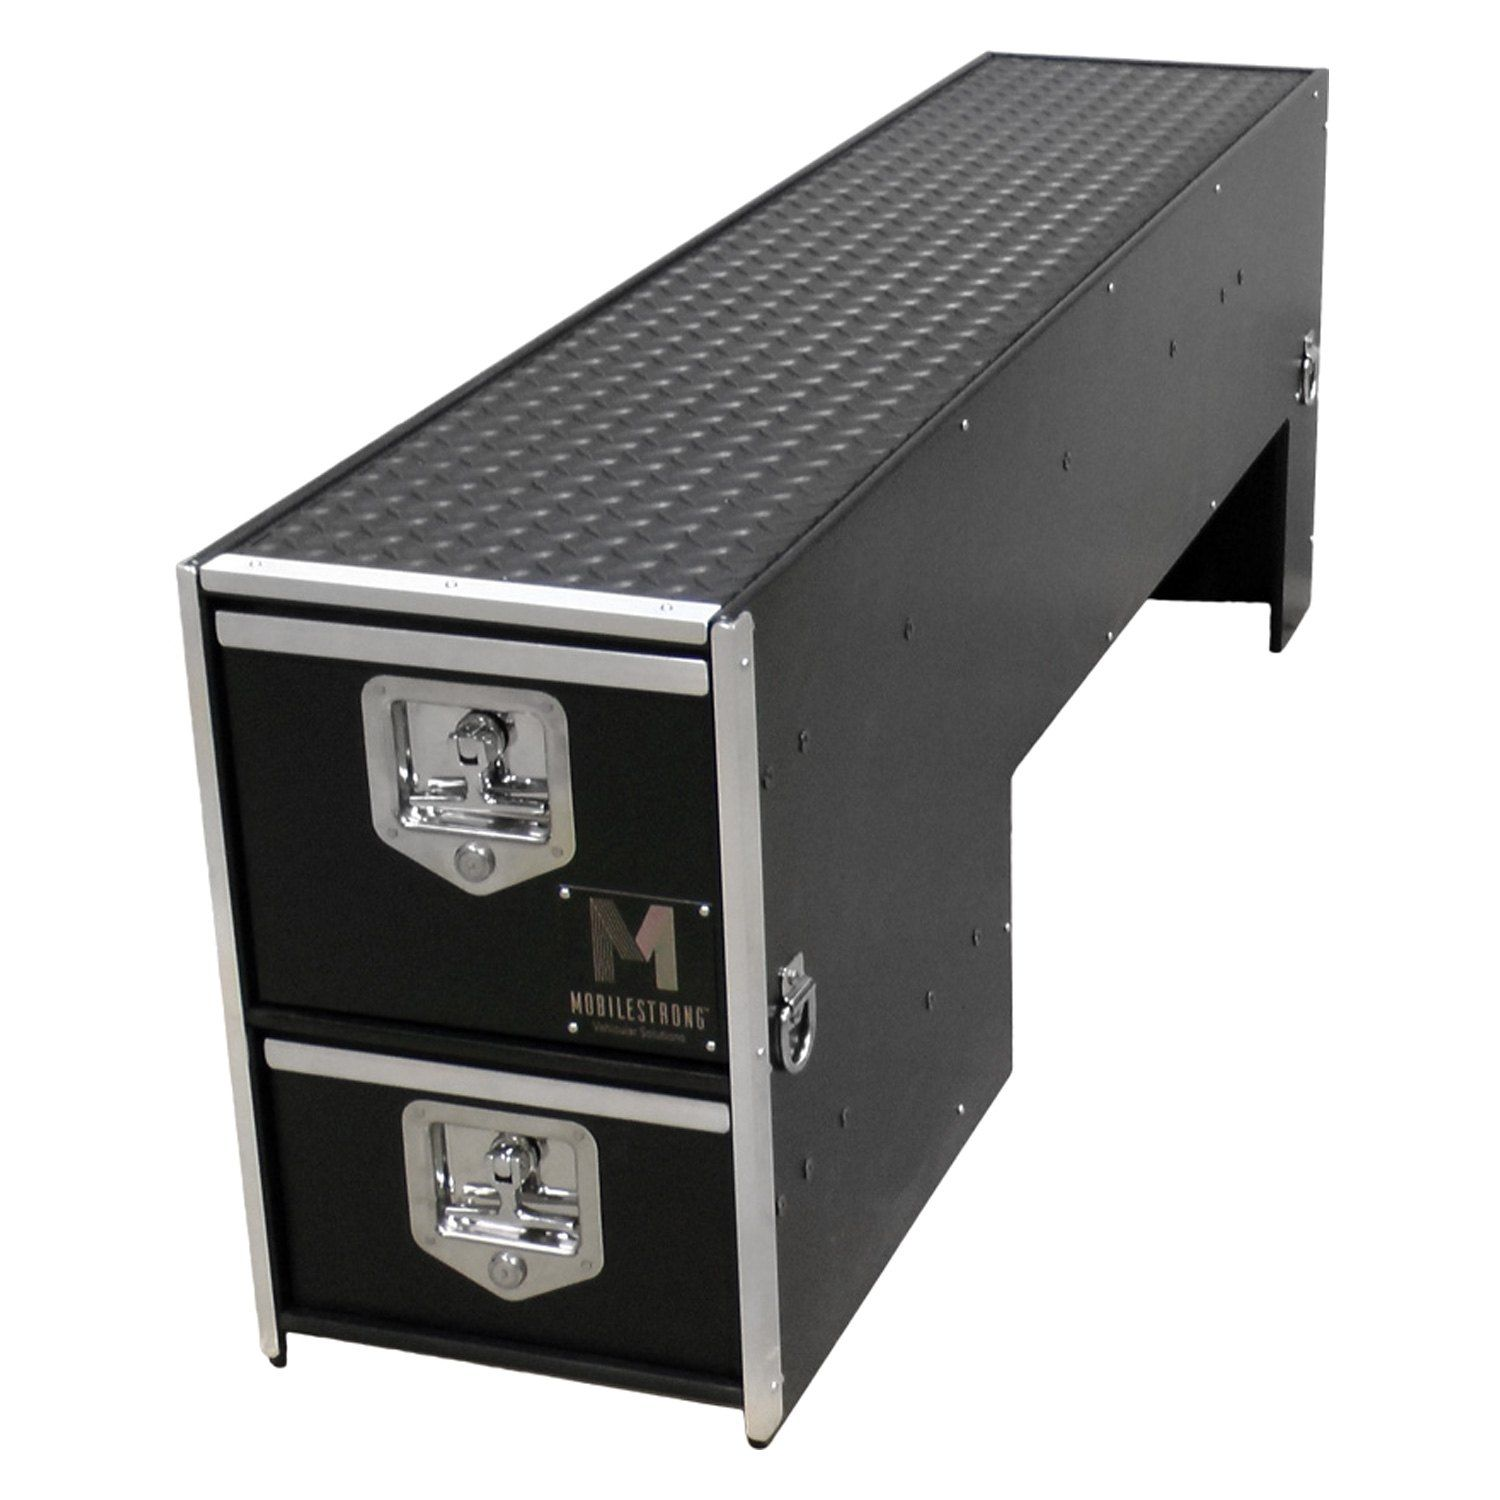 Mobilestrong Hdp Wheel Well Drawer Storage Truck Bed Storage